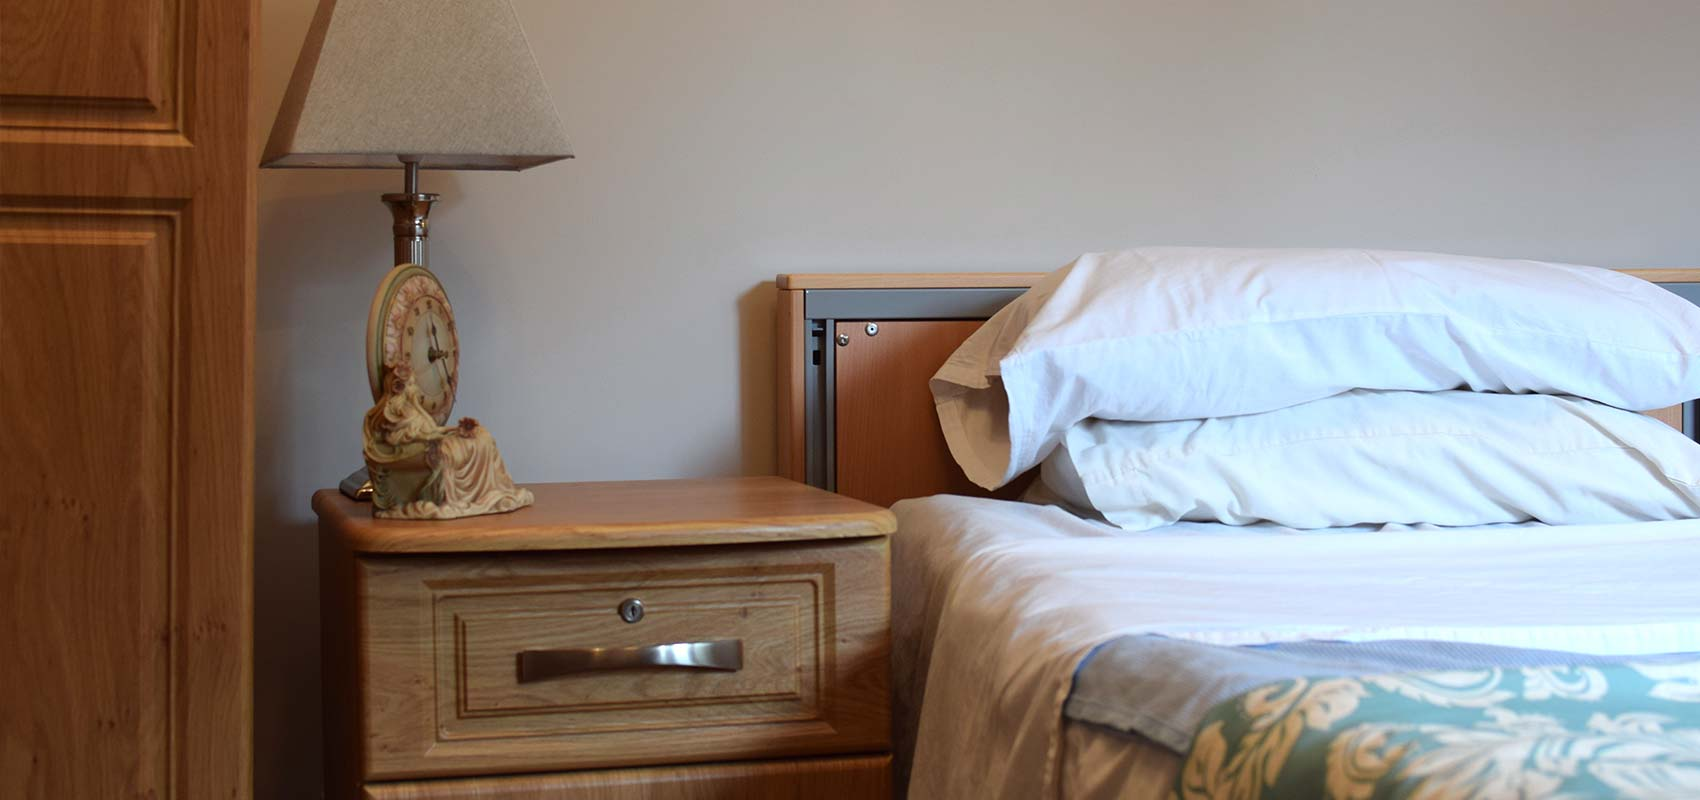 hm_rooms_accommodation_page_fullwidth_imagex2